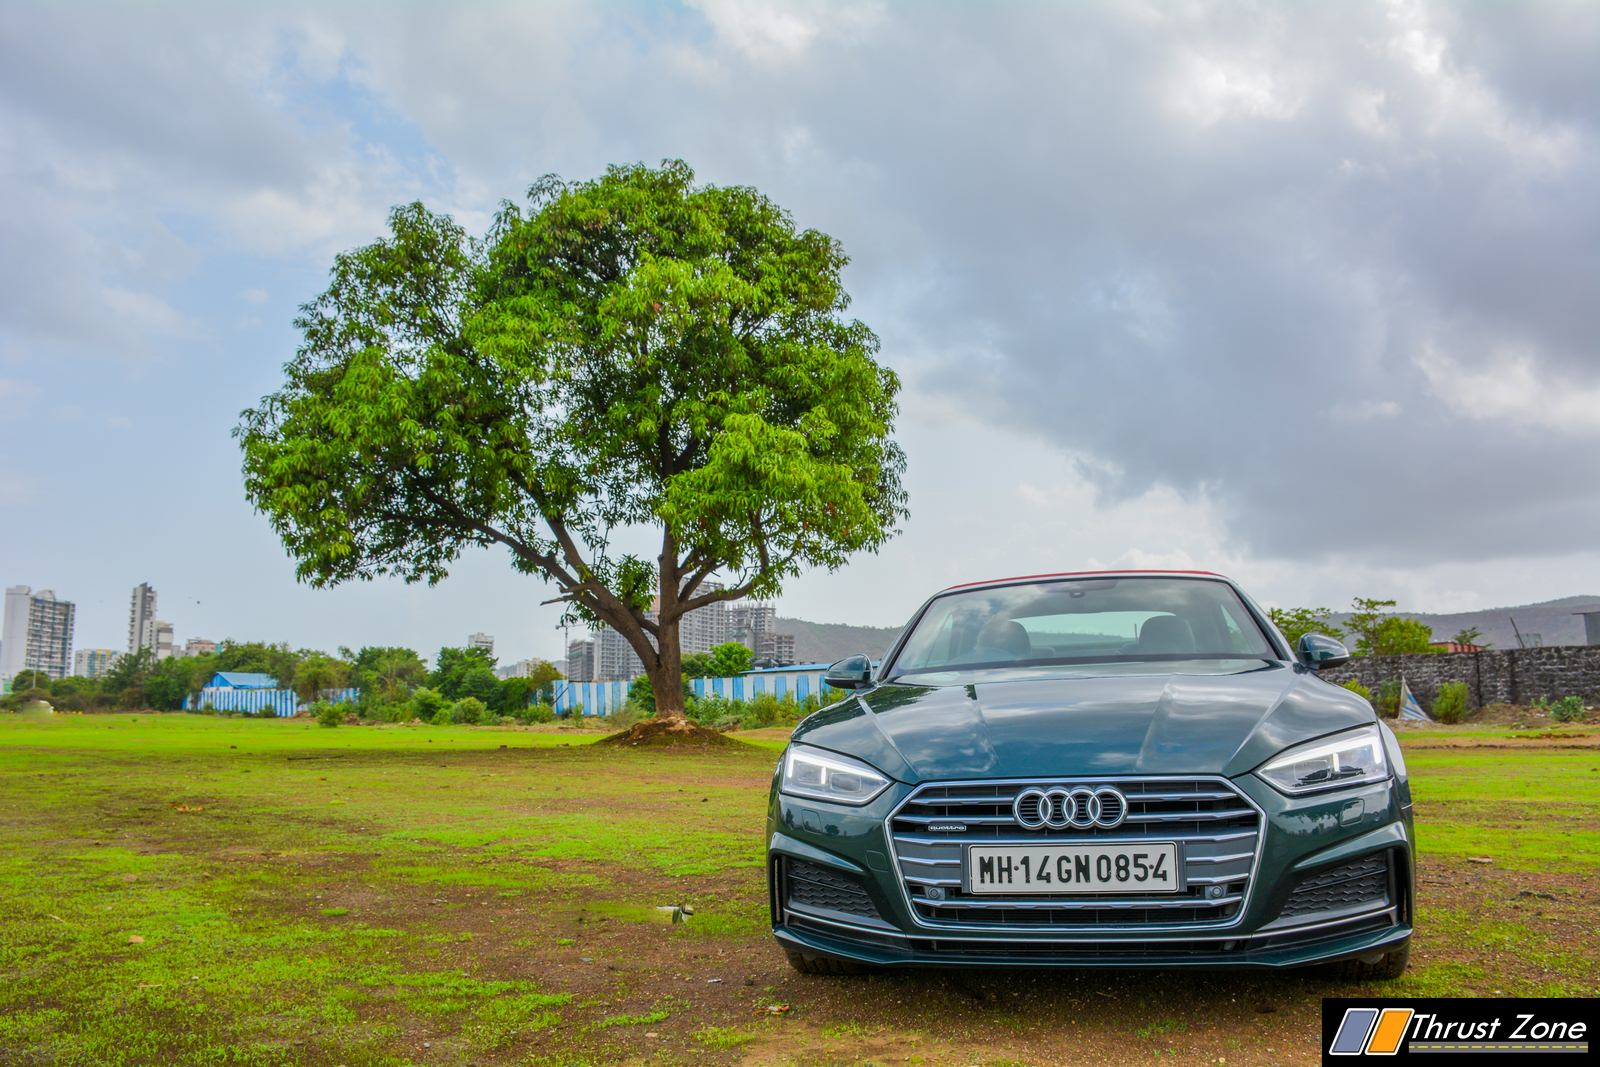 https://www.thrustzone.com/wp-content/uploads/2019/06/2019-Audi-A5-Cabriolet-Convertible-India-Diesel-Review-13.jpg